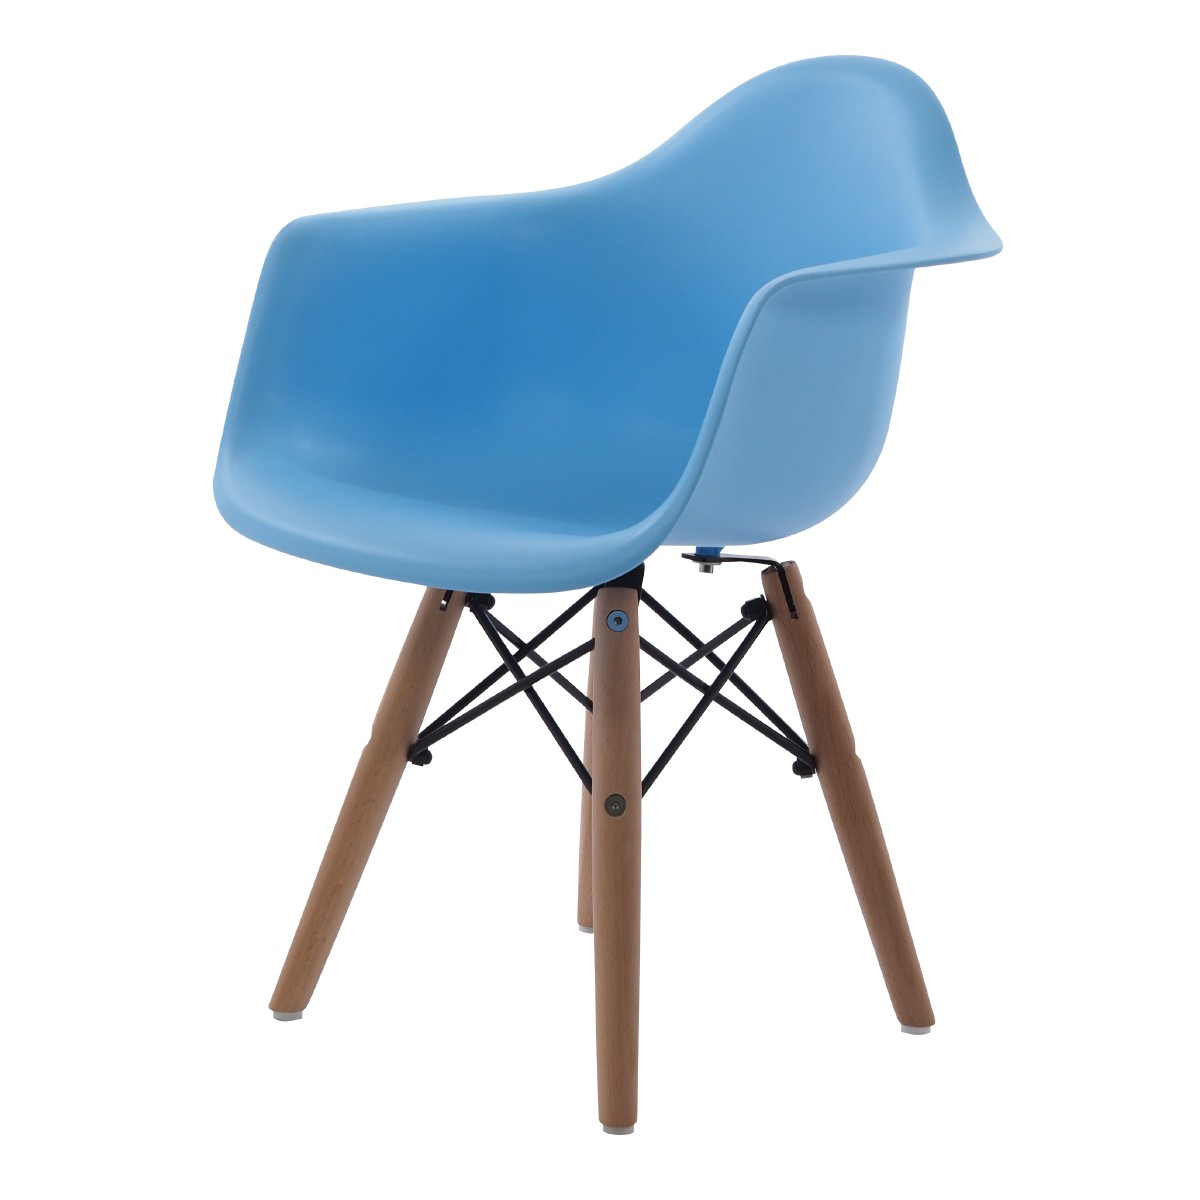 Charles Eames DAW Childrenu0027s Chair